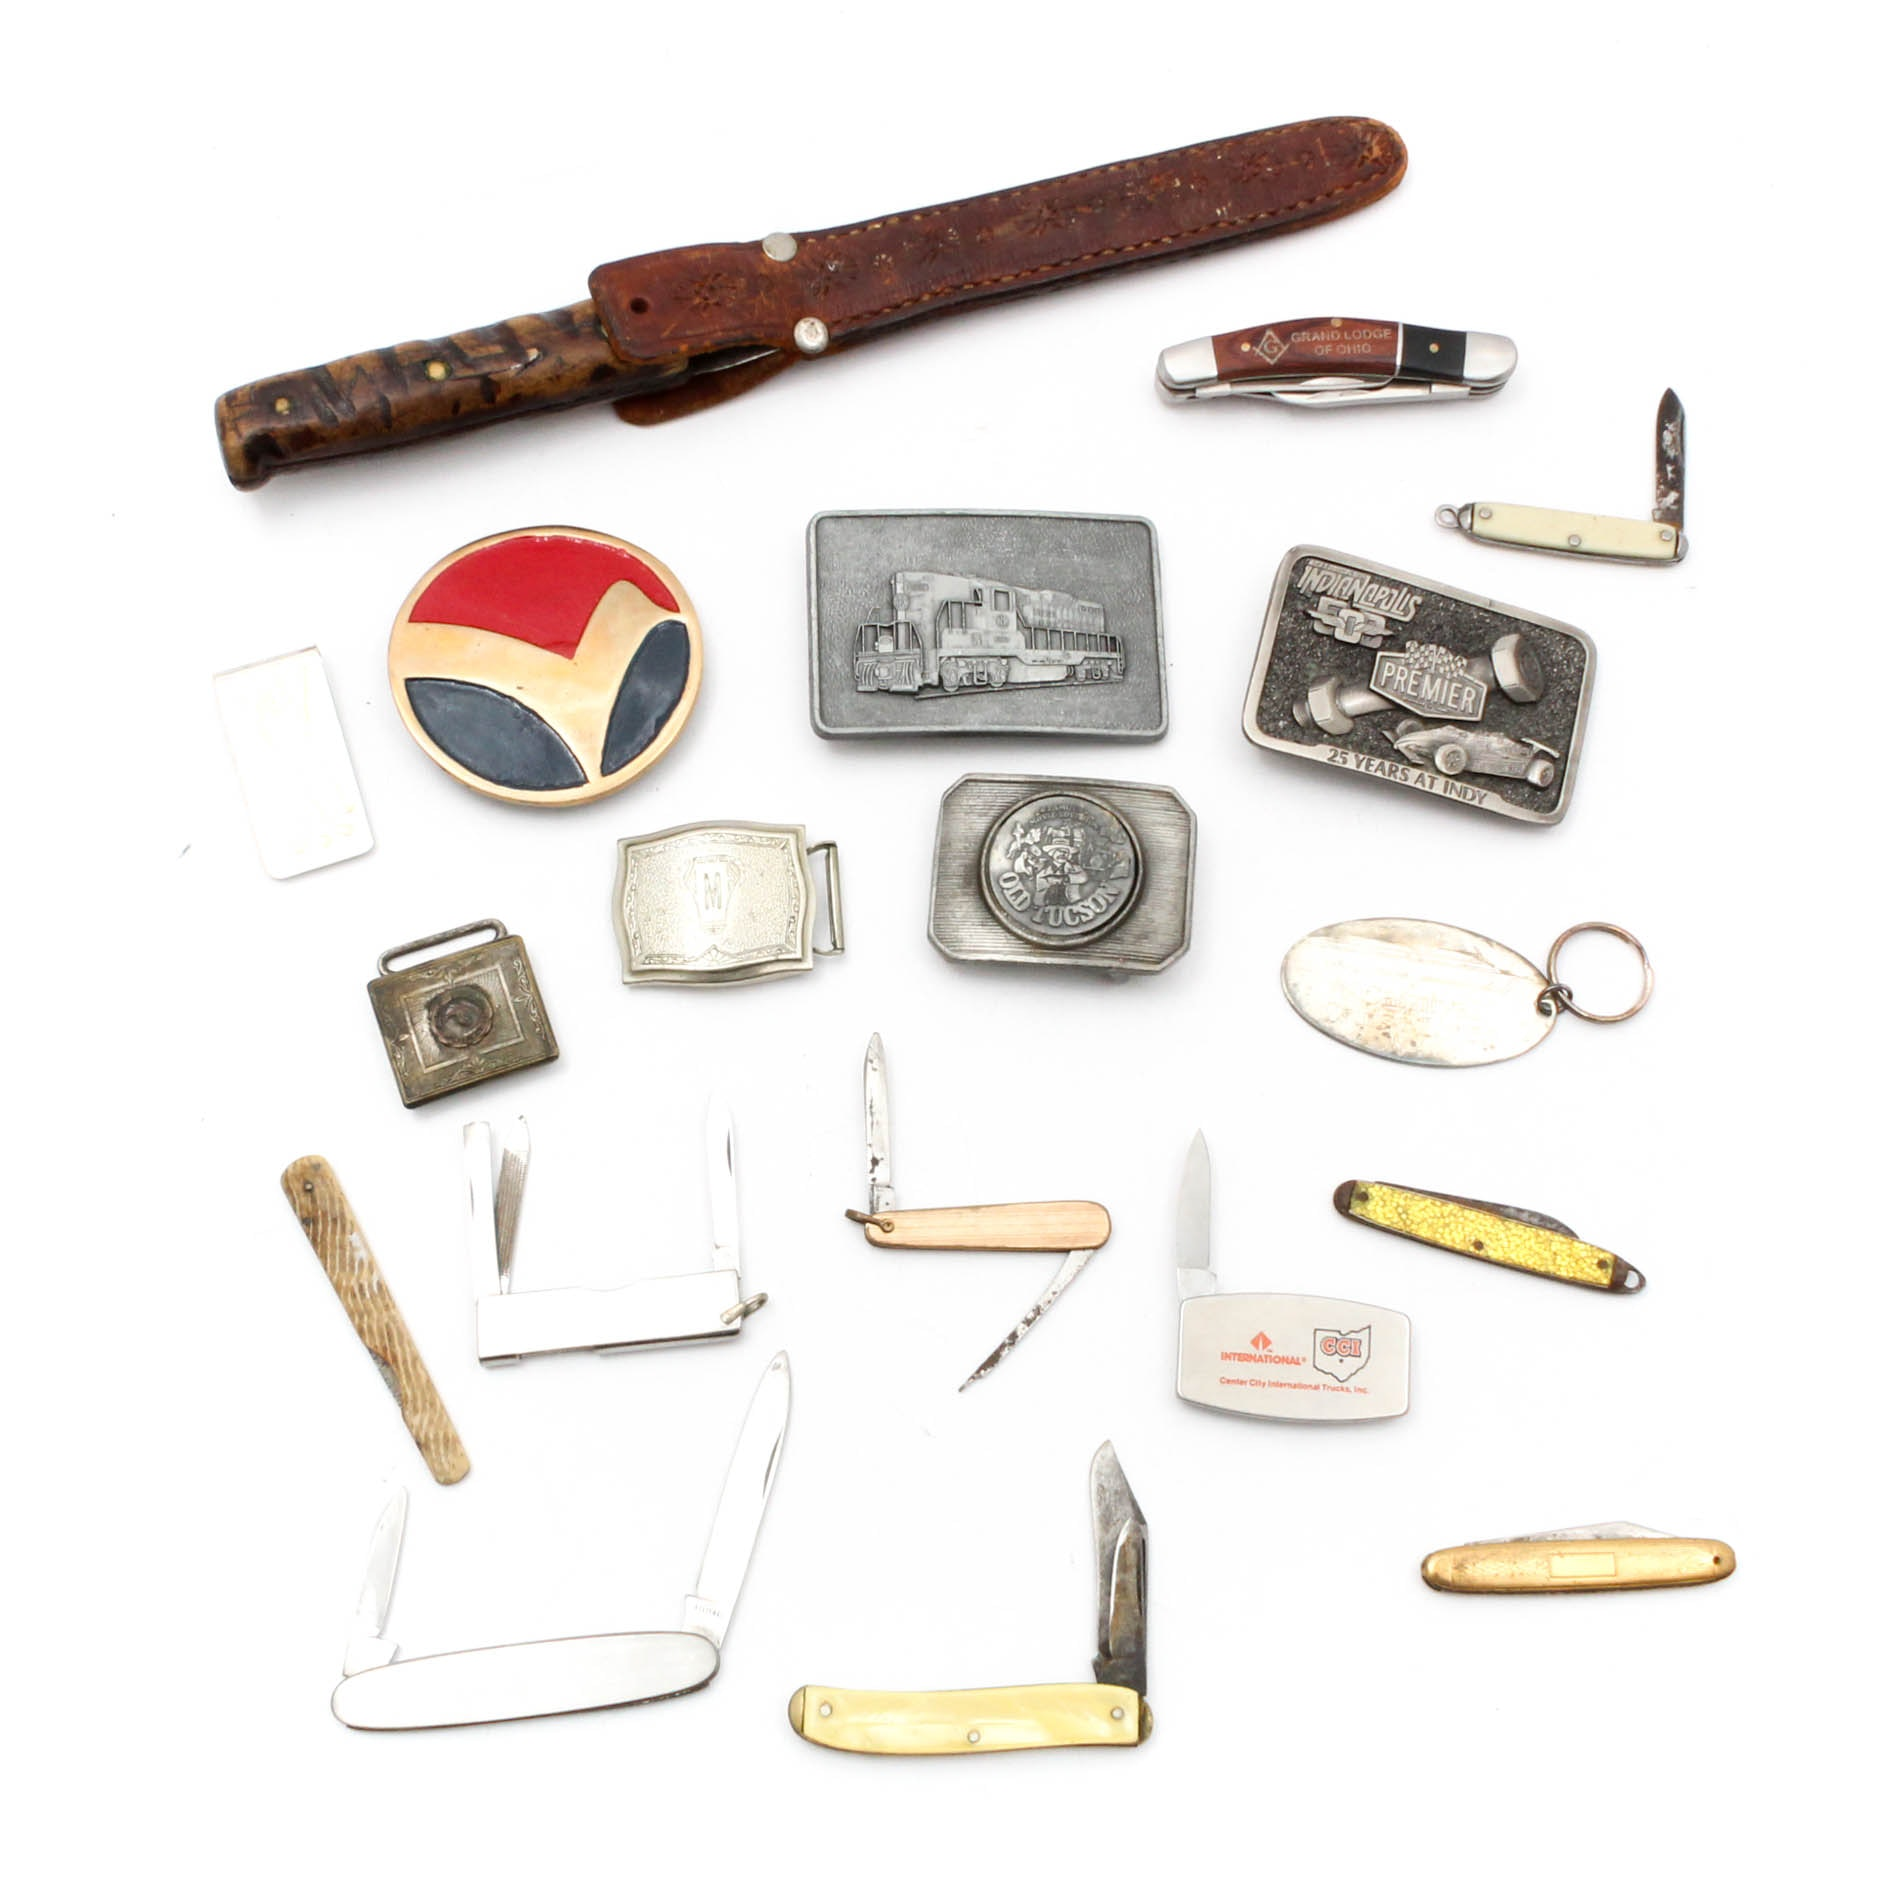 Vintage Pocket Knives, Belt Buckles and Money Clips